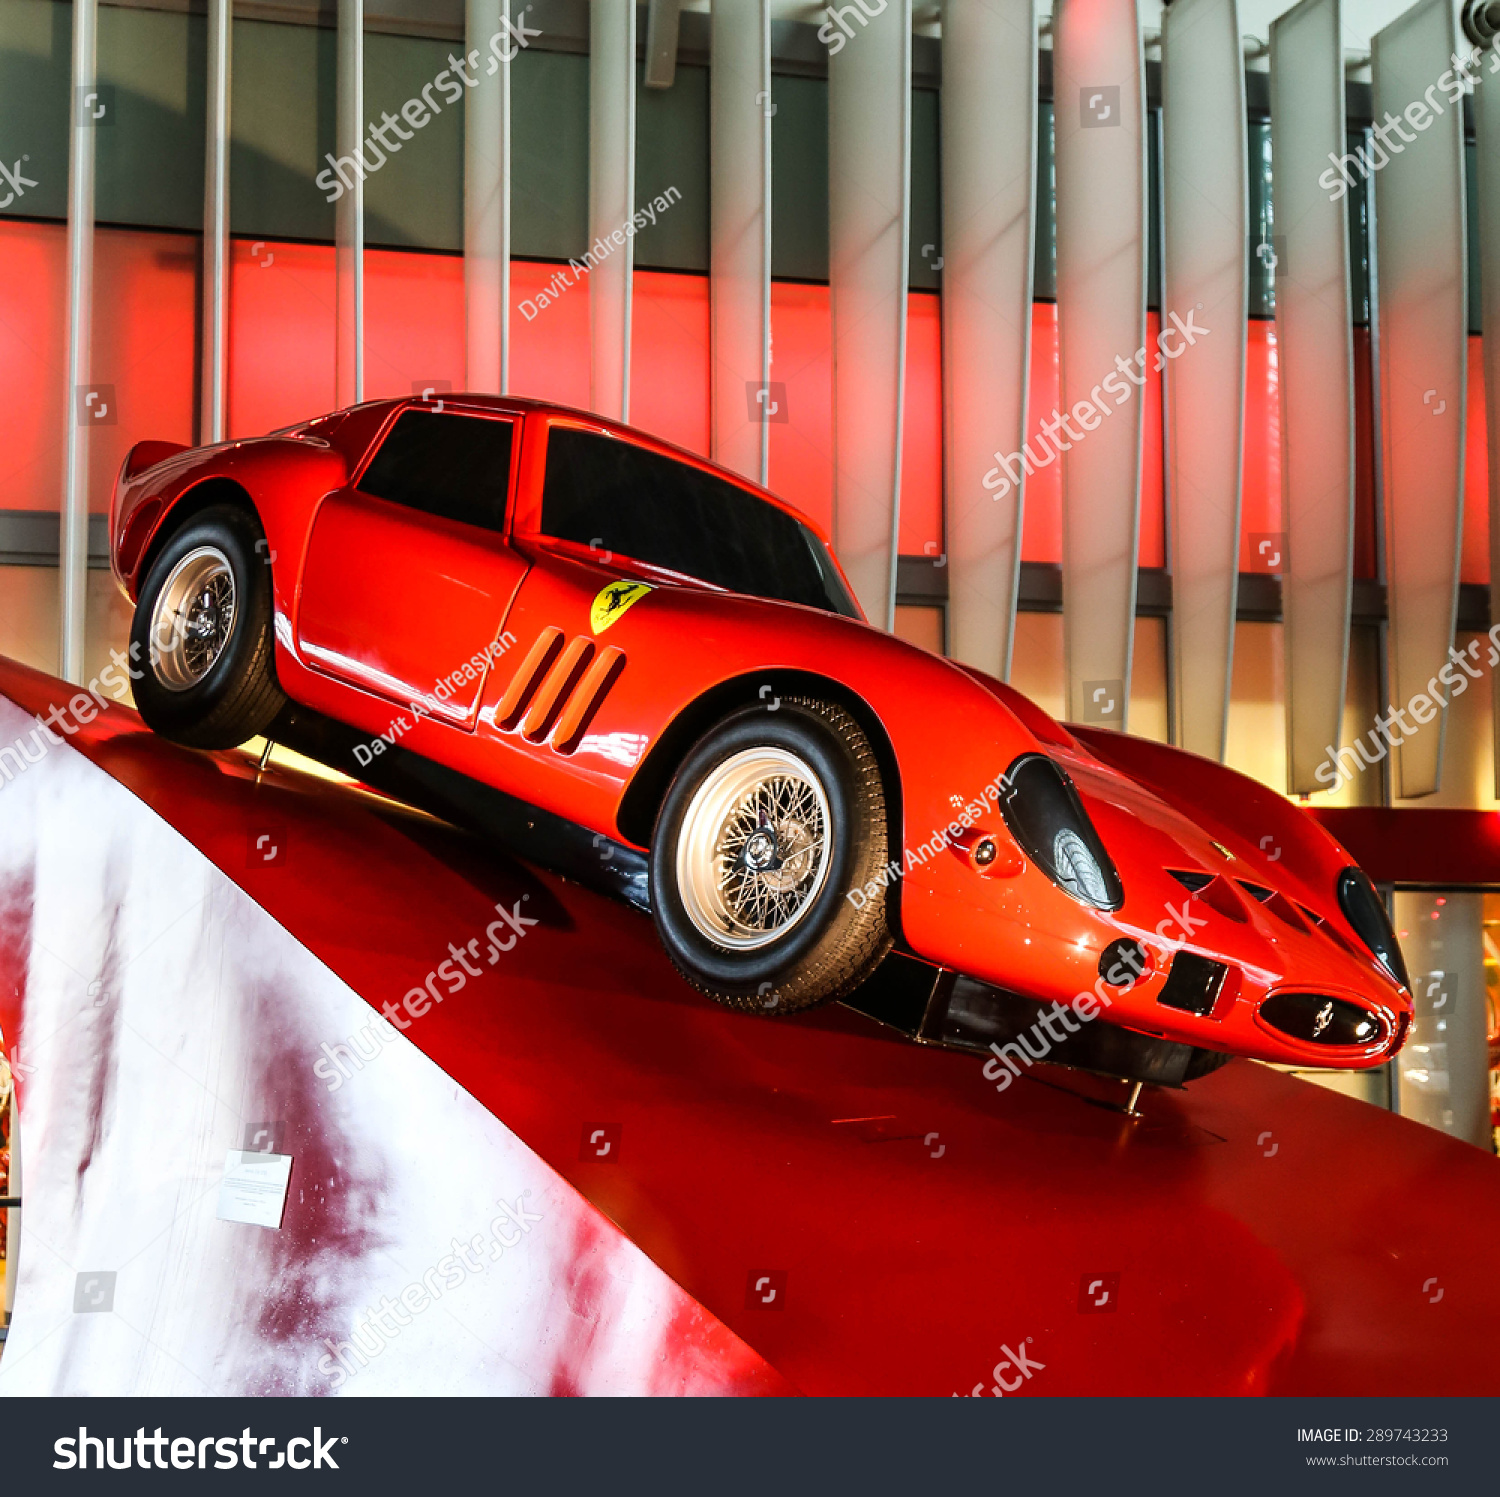 all go much september theme was to wait dhabi this eid world and mall tour s waterworld dubai celebrations yas t abu with lifeguard can uae titan so of part ferrari back fun the included robot island blog park had a